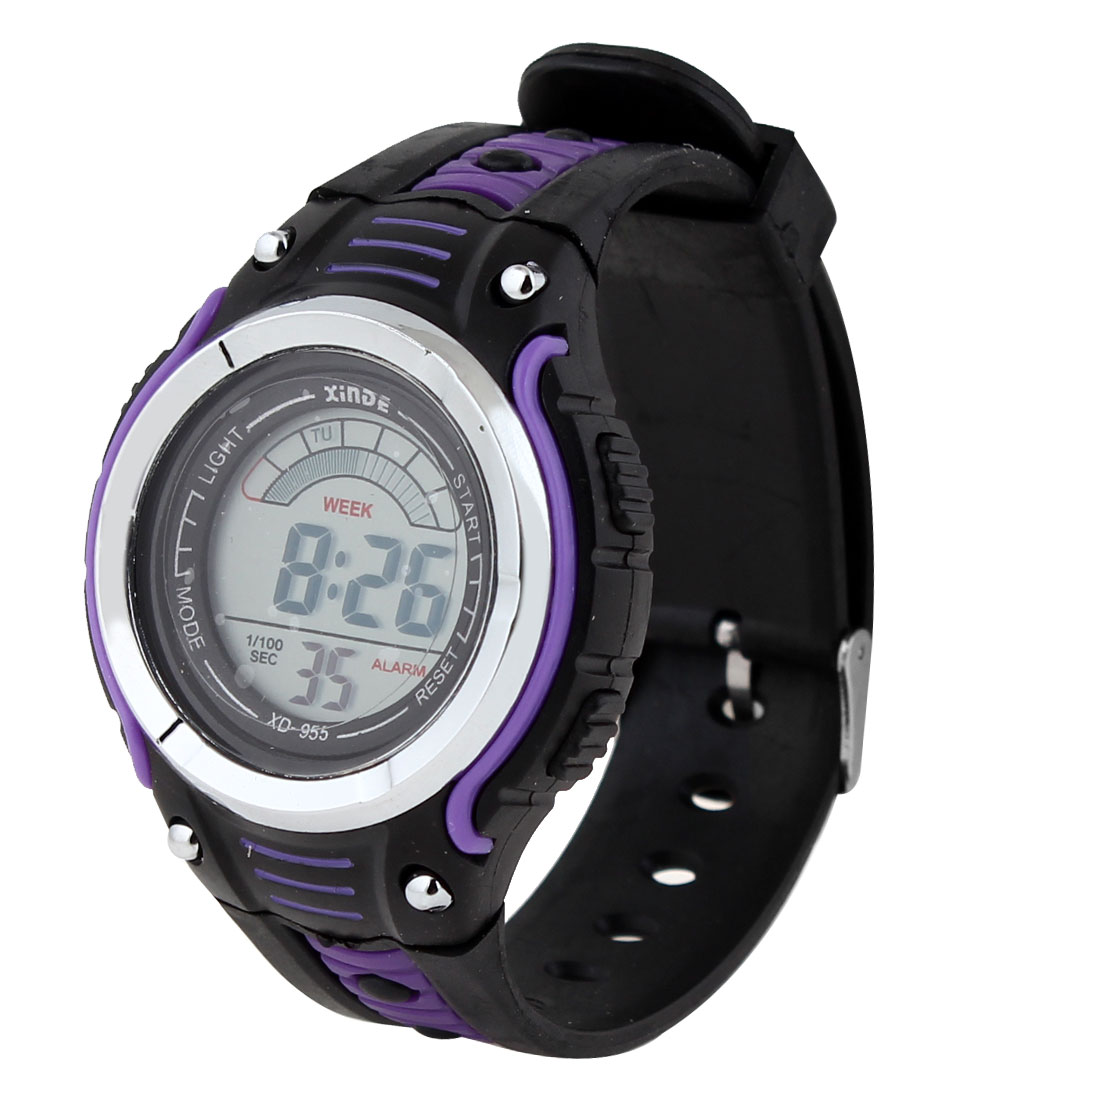 Child One Pin Buckle Hours LCD Display Digital Watch Wristwatch Purple Black